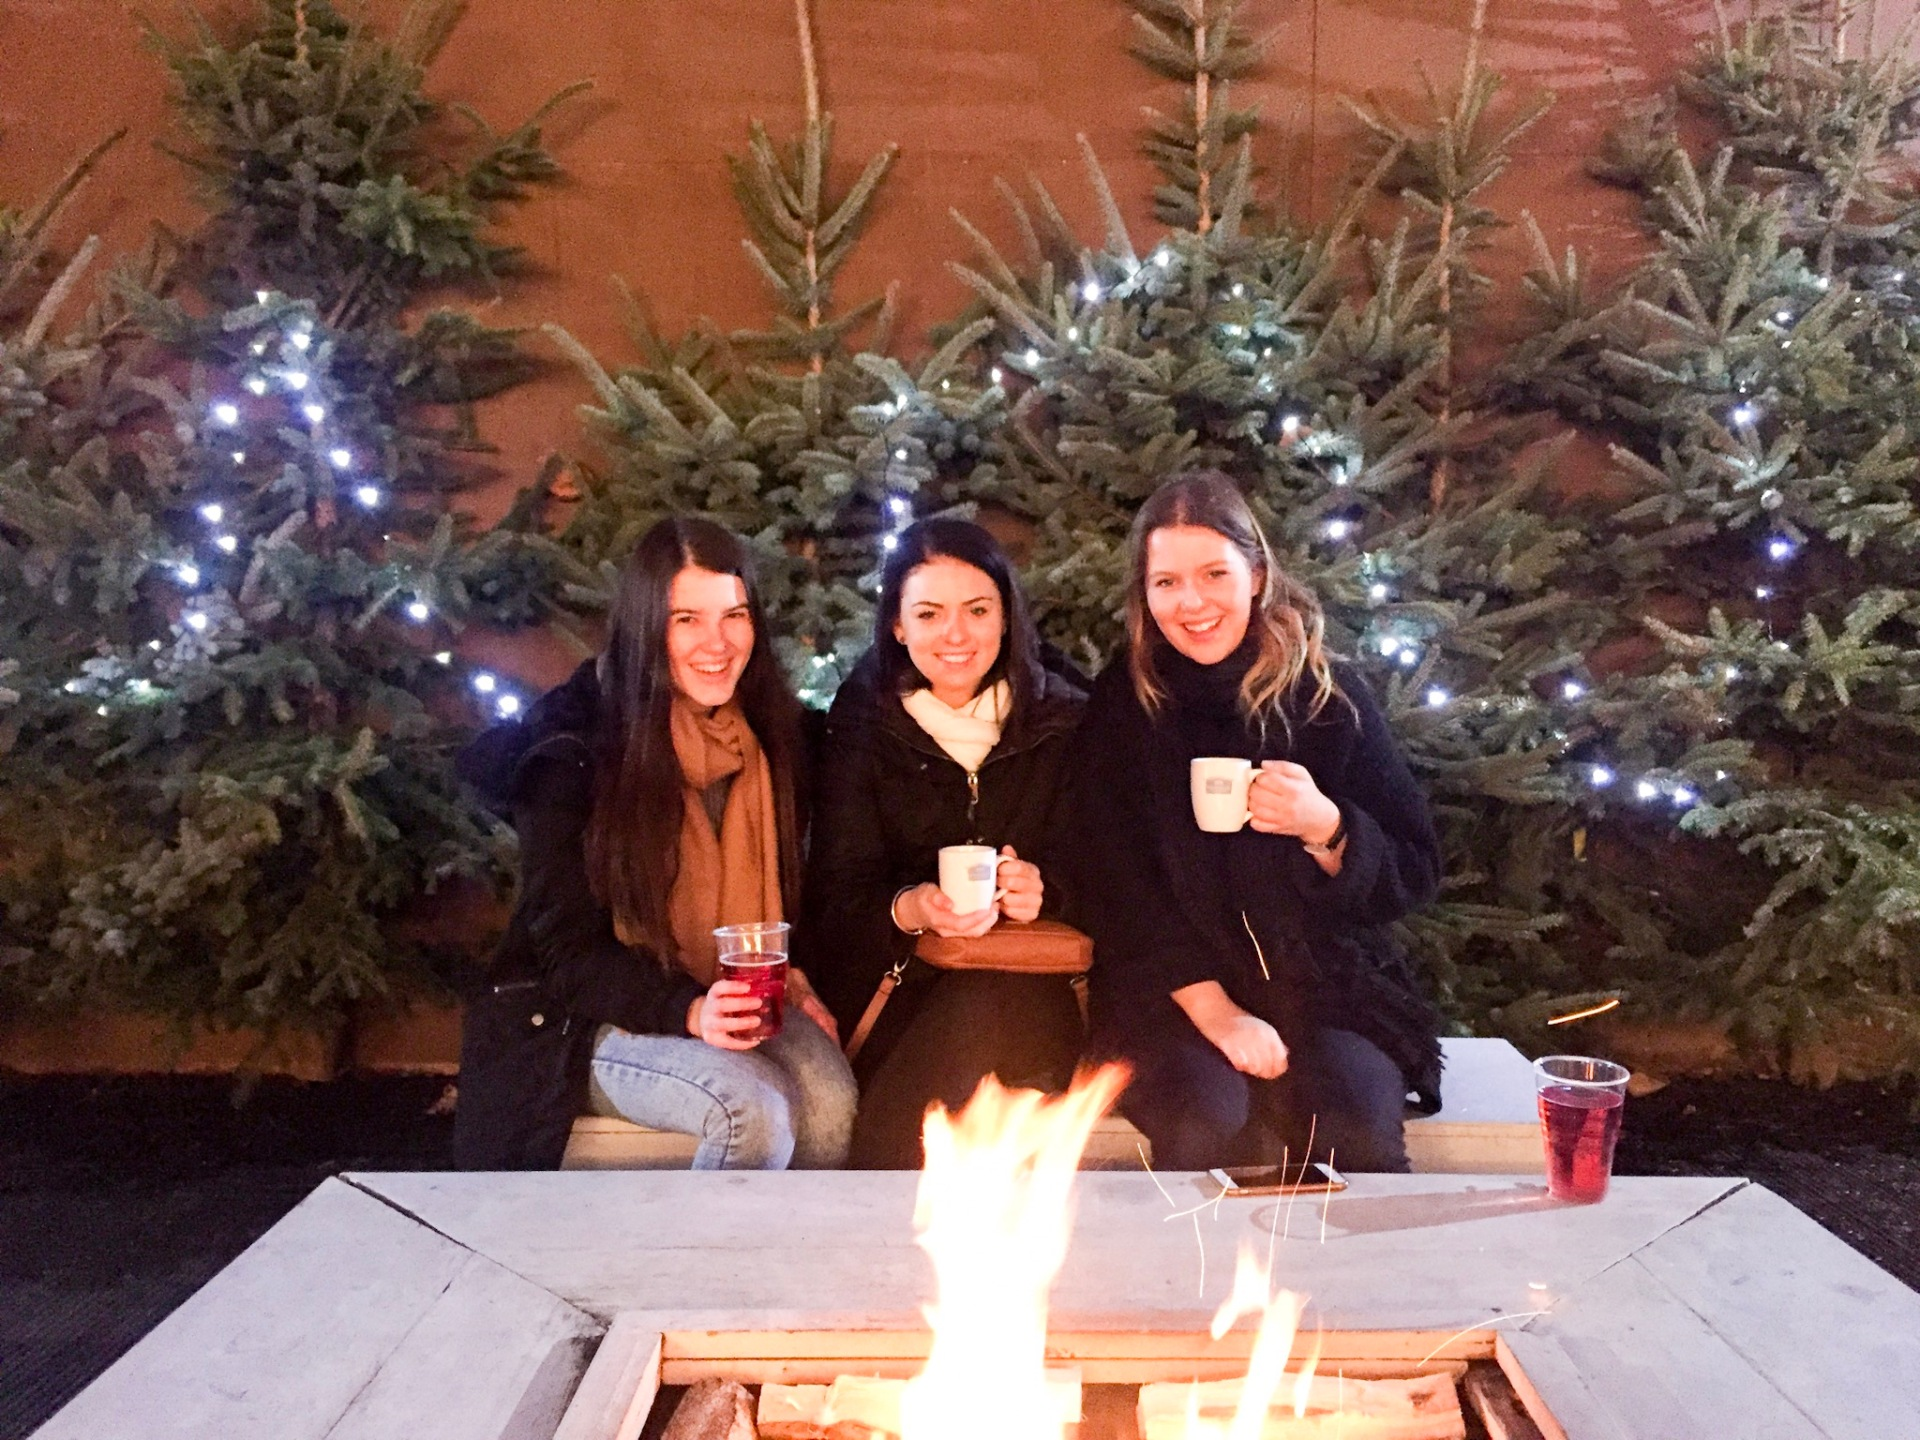 Drinking mulled wine in front of a fire